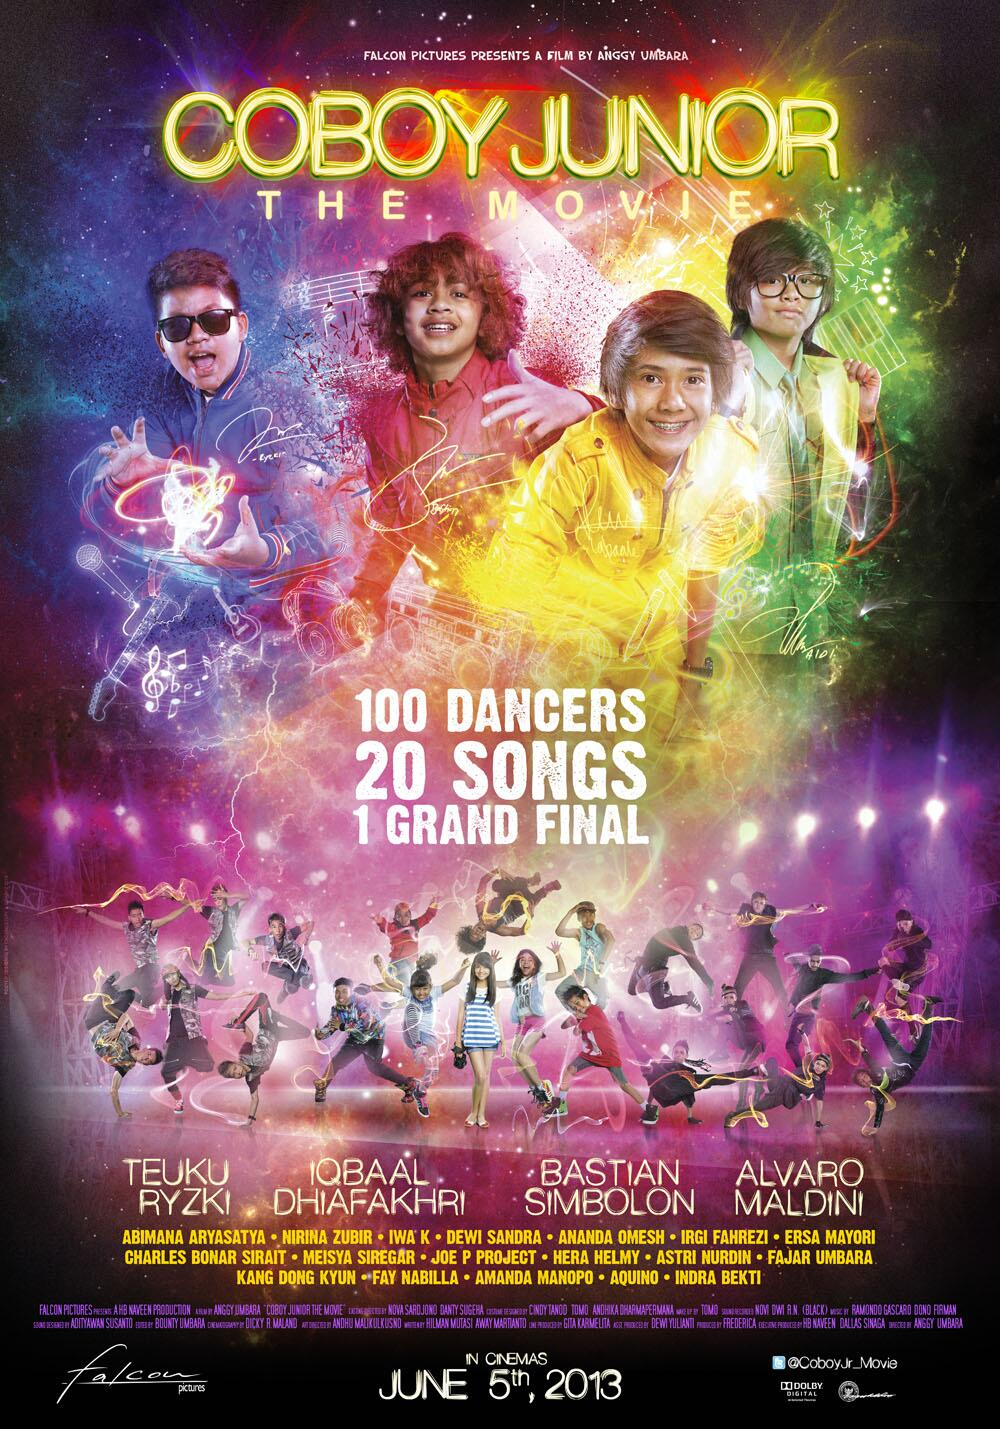 Film Coboy Junior The Movie (Cjr The Movie), menceritakan tentang